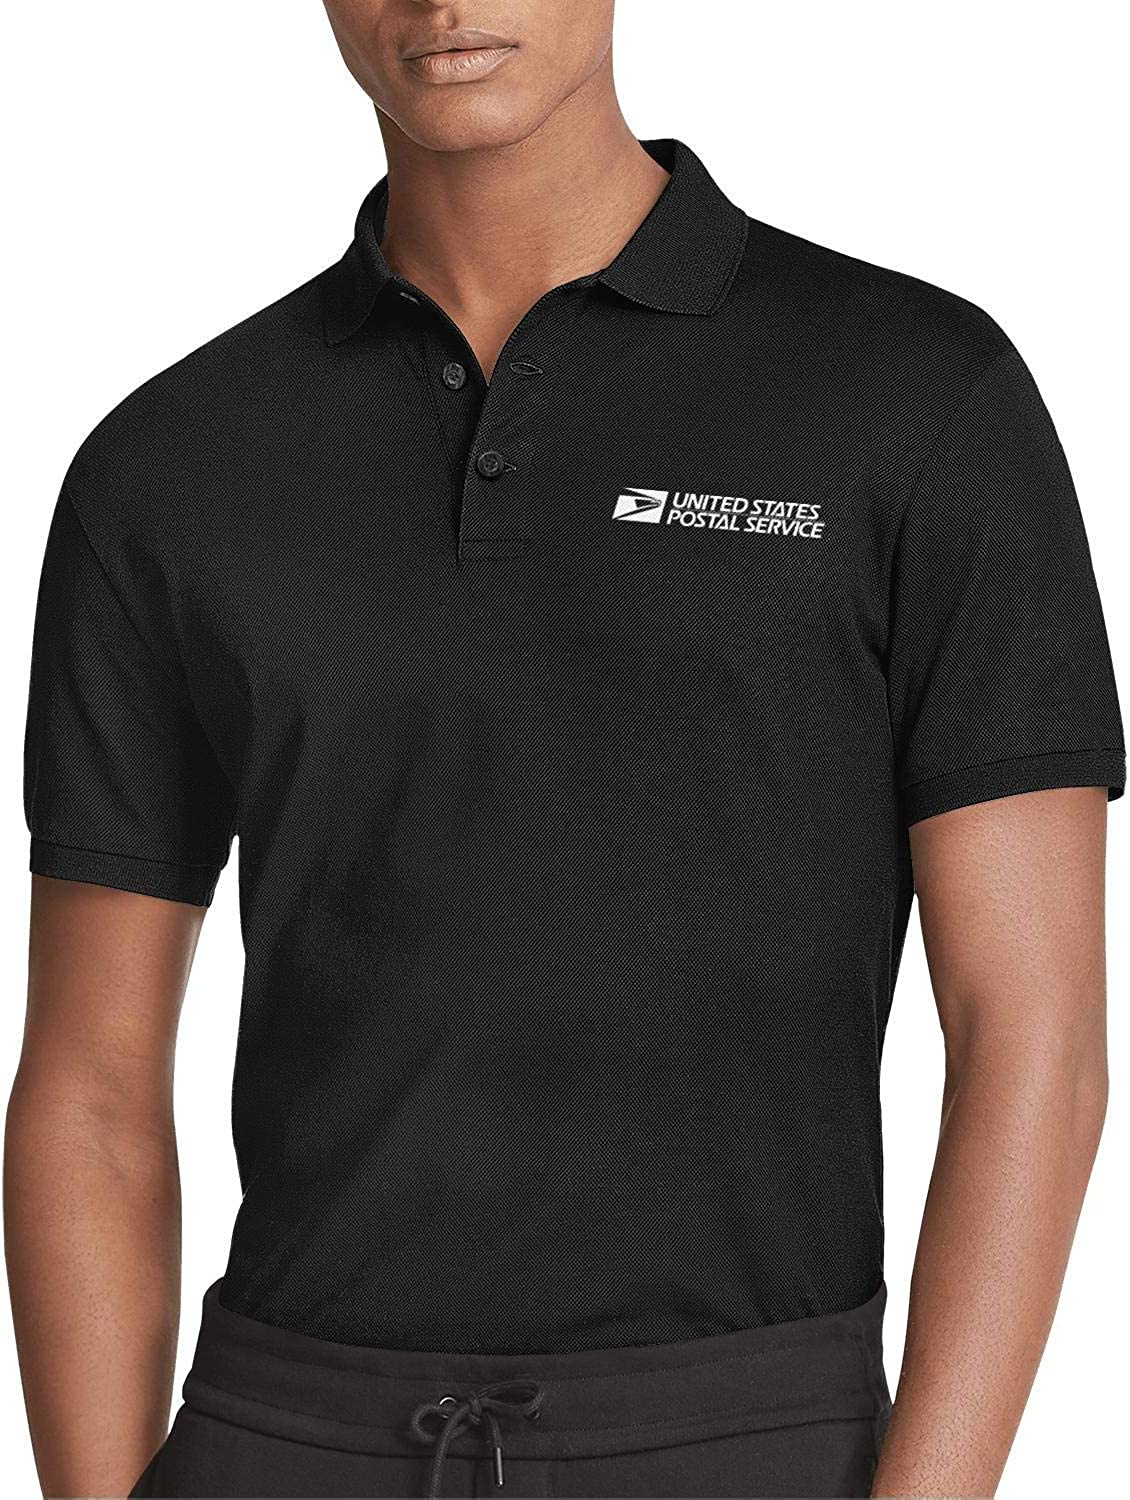 Men's White-United-States-Postal-Service Logo Golf Black Polo T-Shirts Tee Jersey